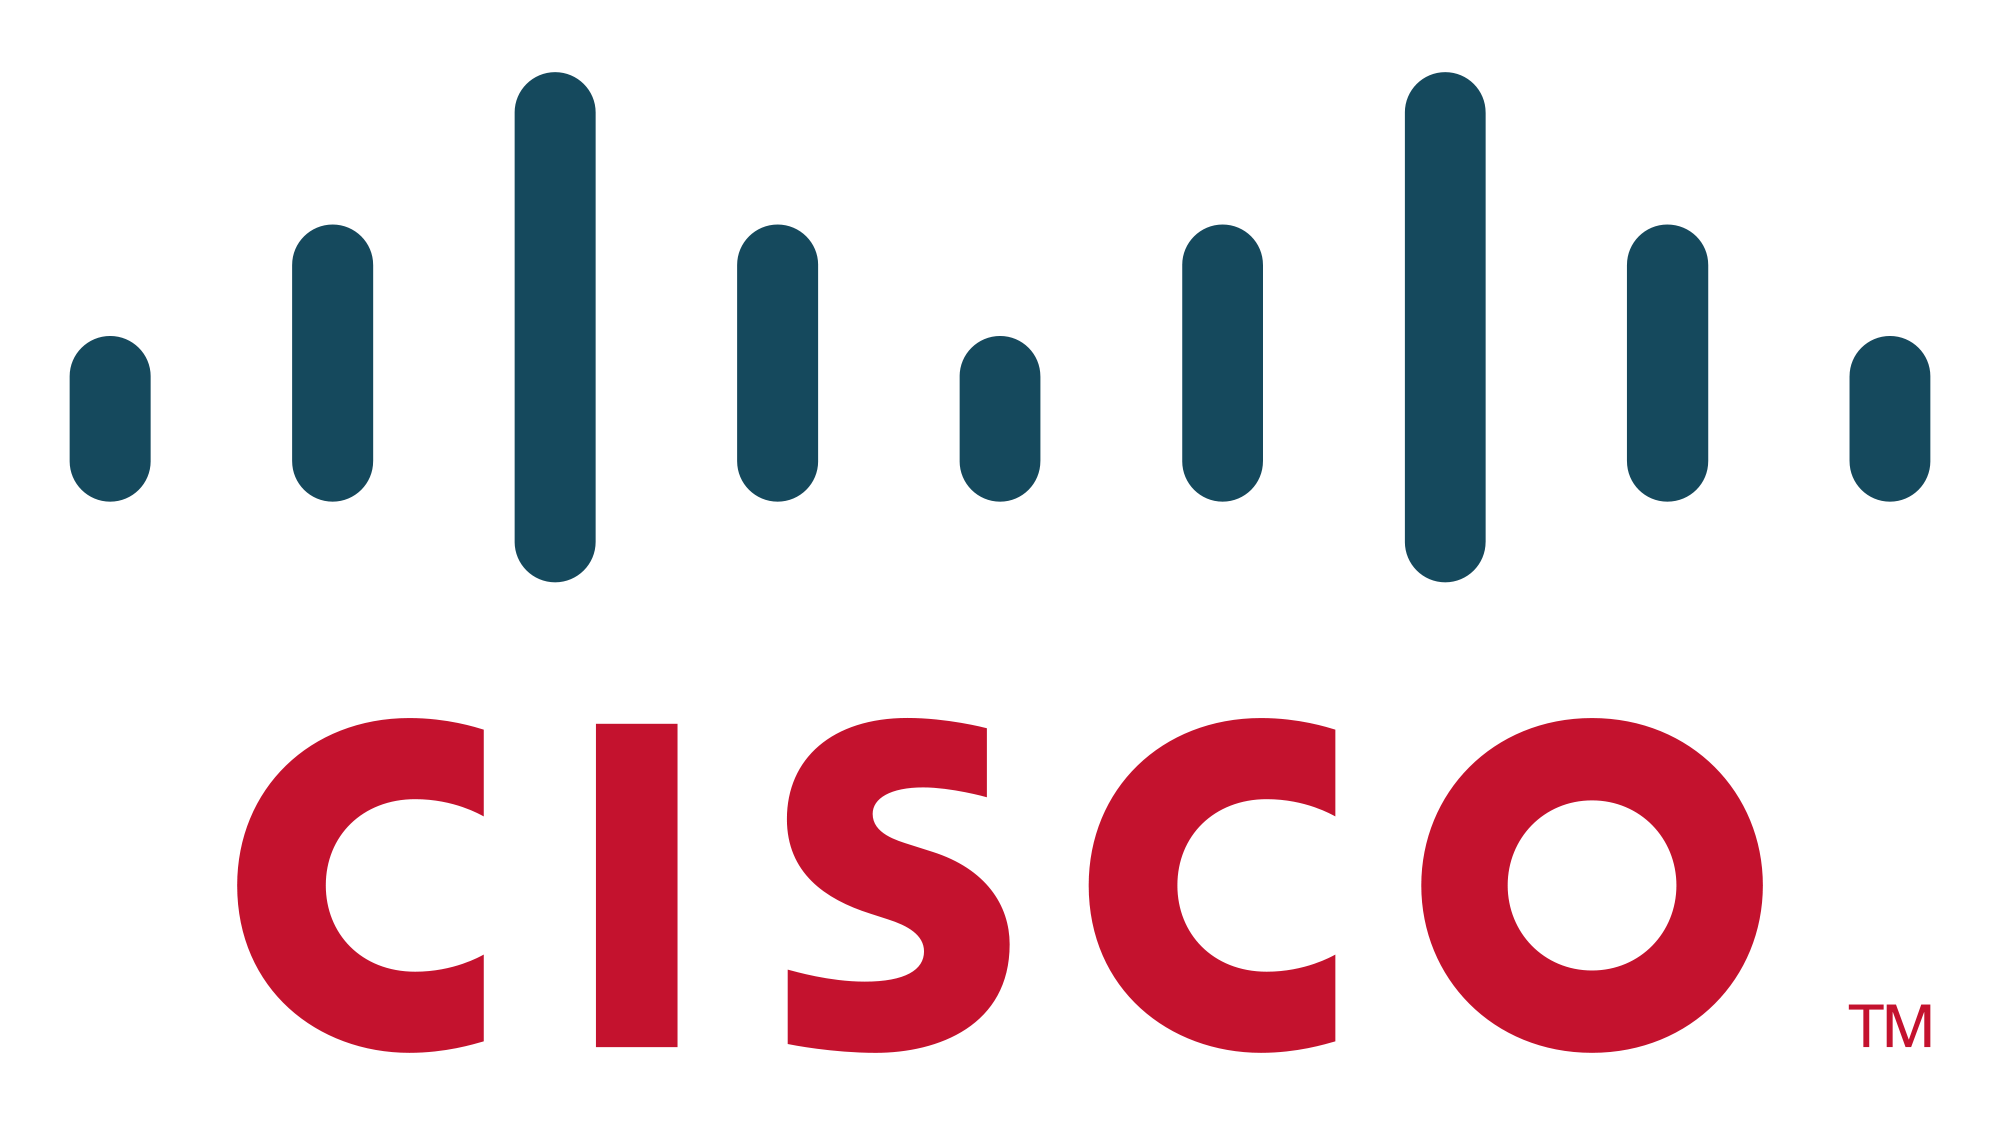 Cisco to acquire Springpath in $320 million deal